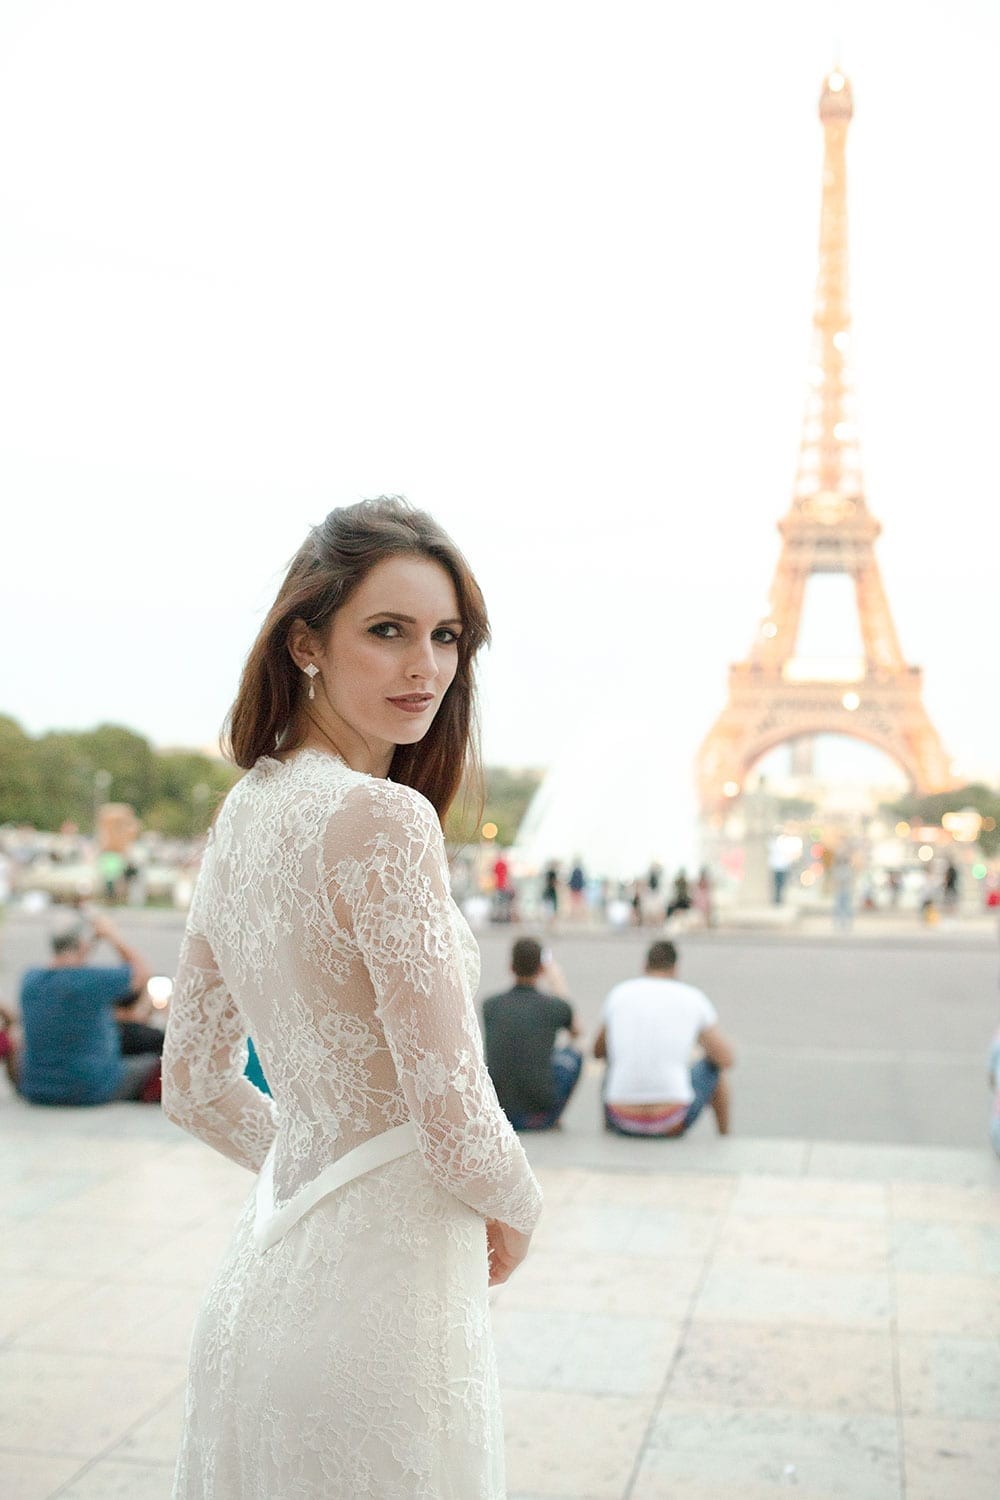 Model wearing Vinka Design Deanna Wedding Dress, a Lace Wedding Gown with Sleeves facing towards the Eiffel Tower in Paris